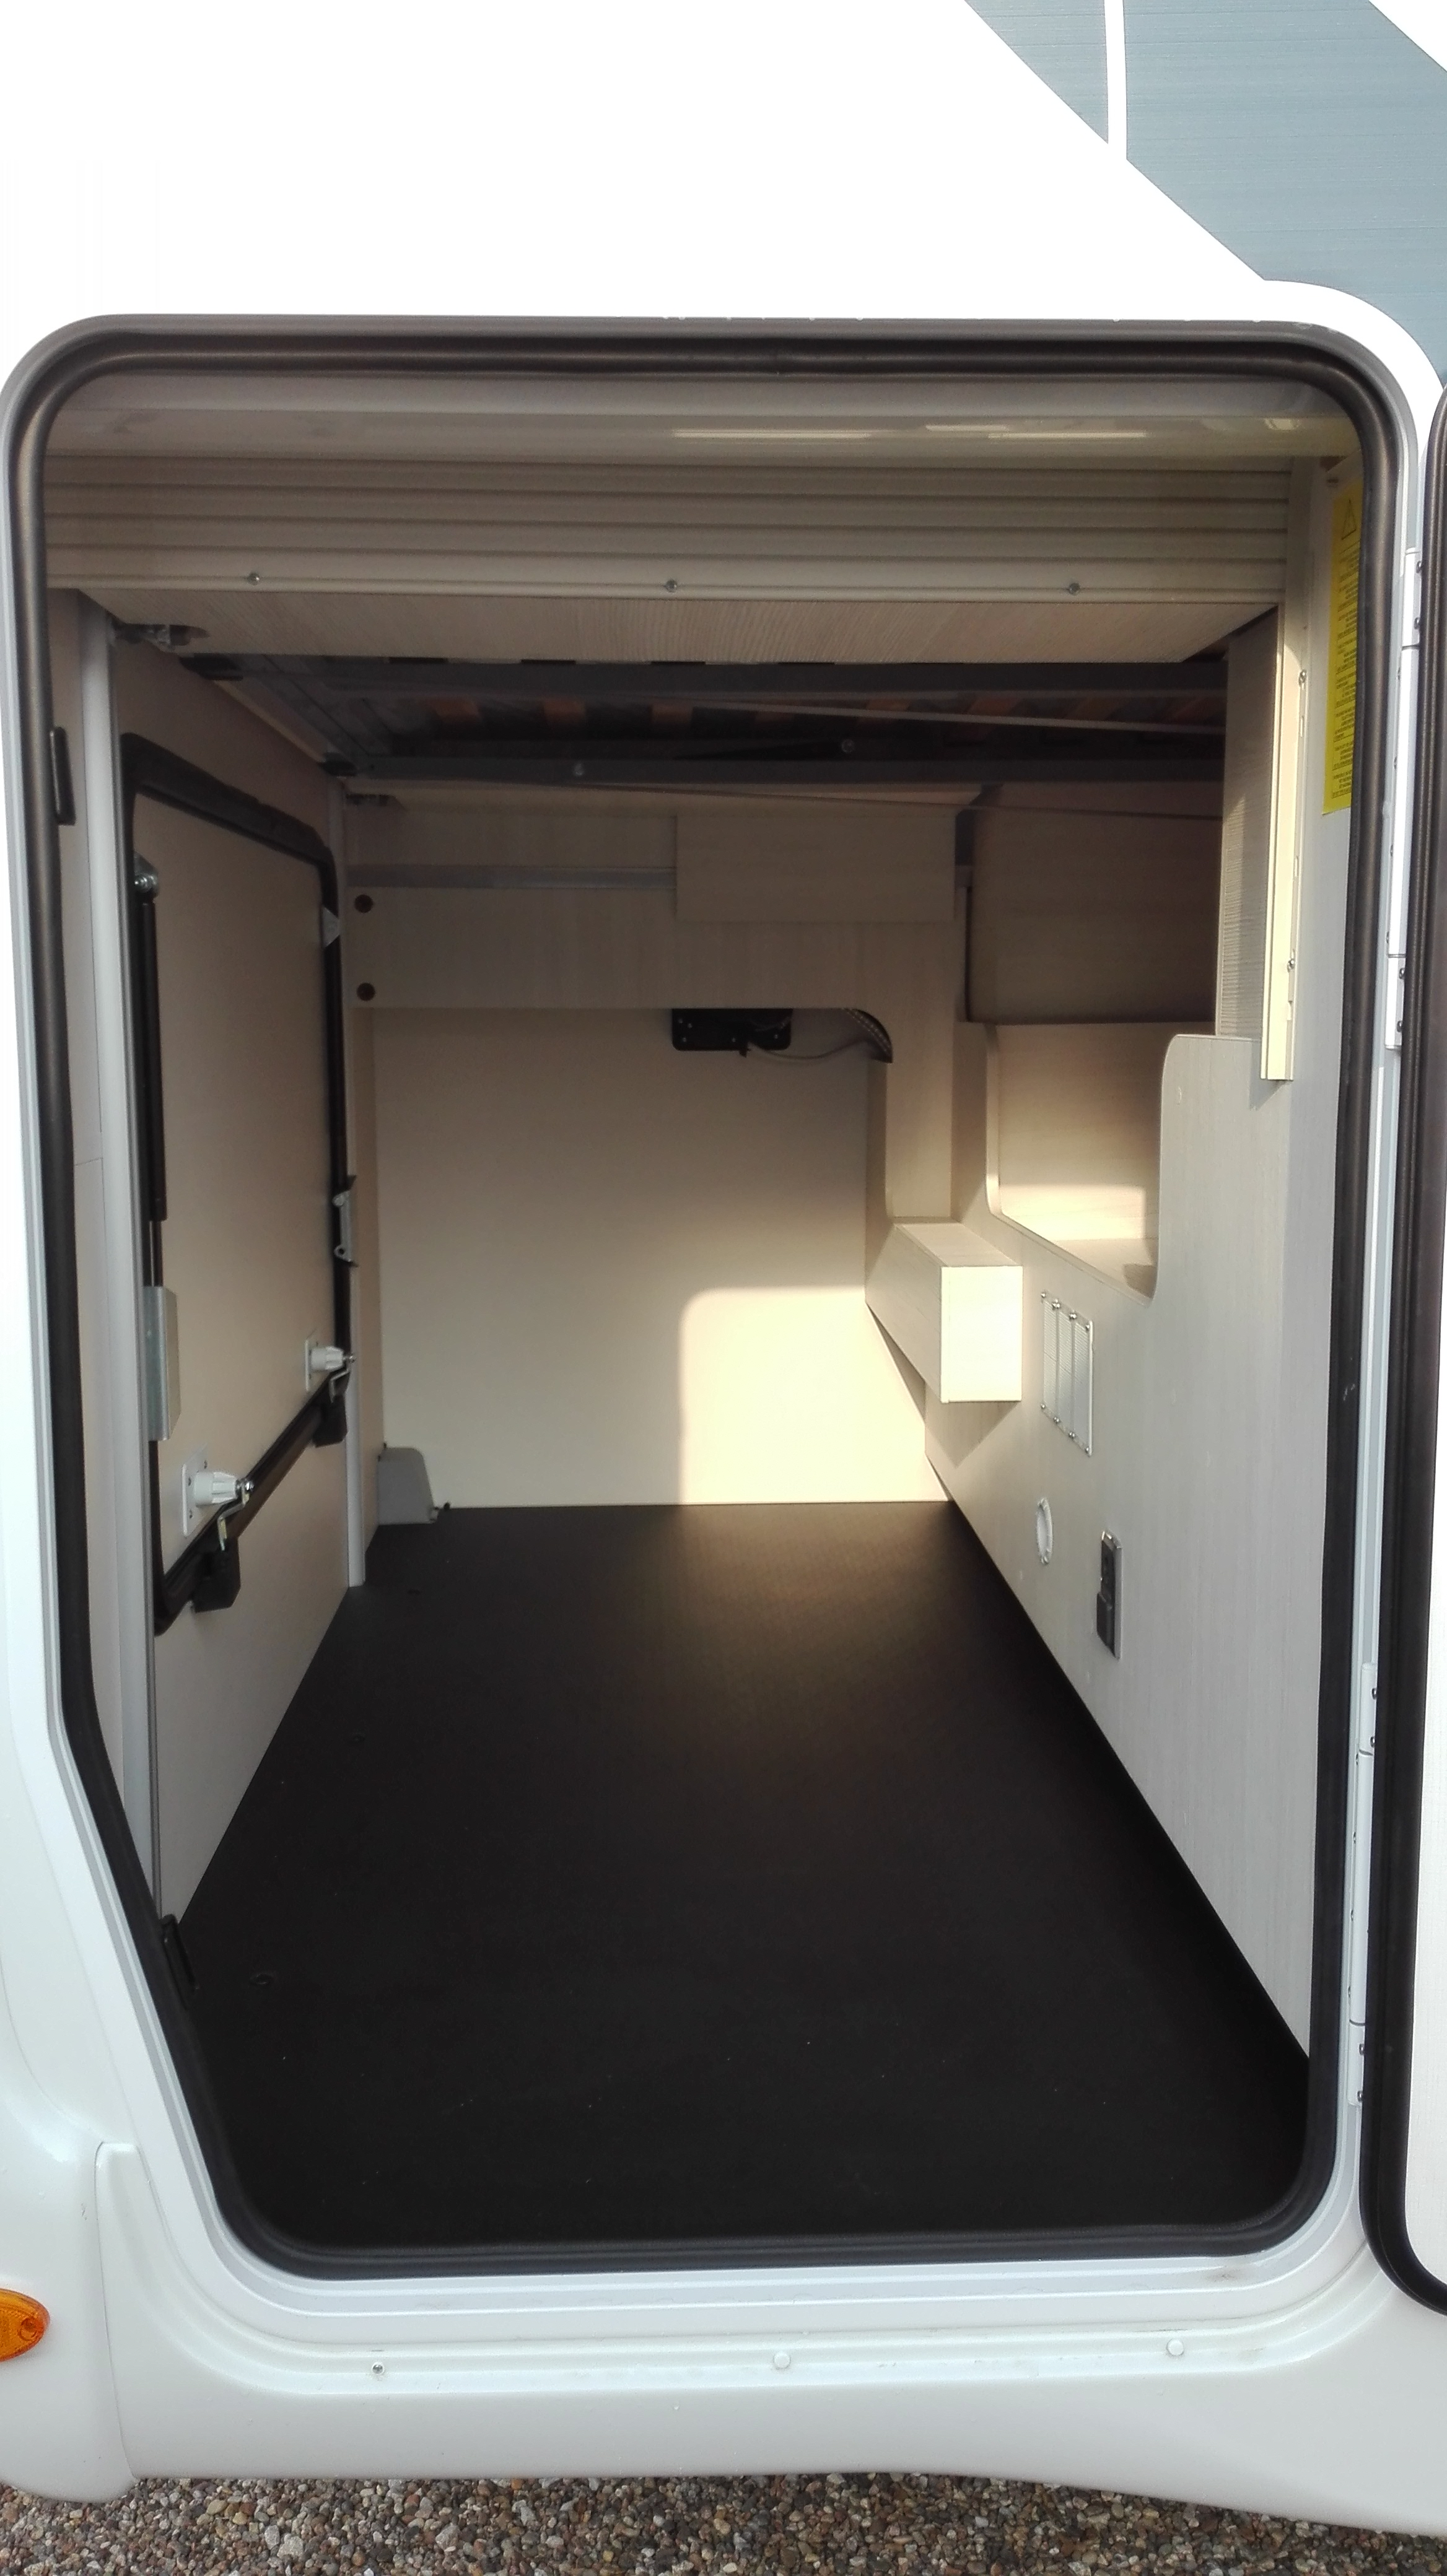 Chausson Welcome 718 Xlb - 9